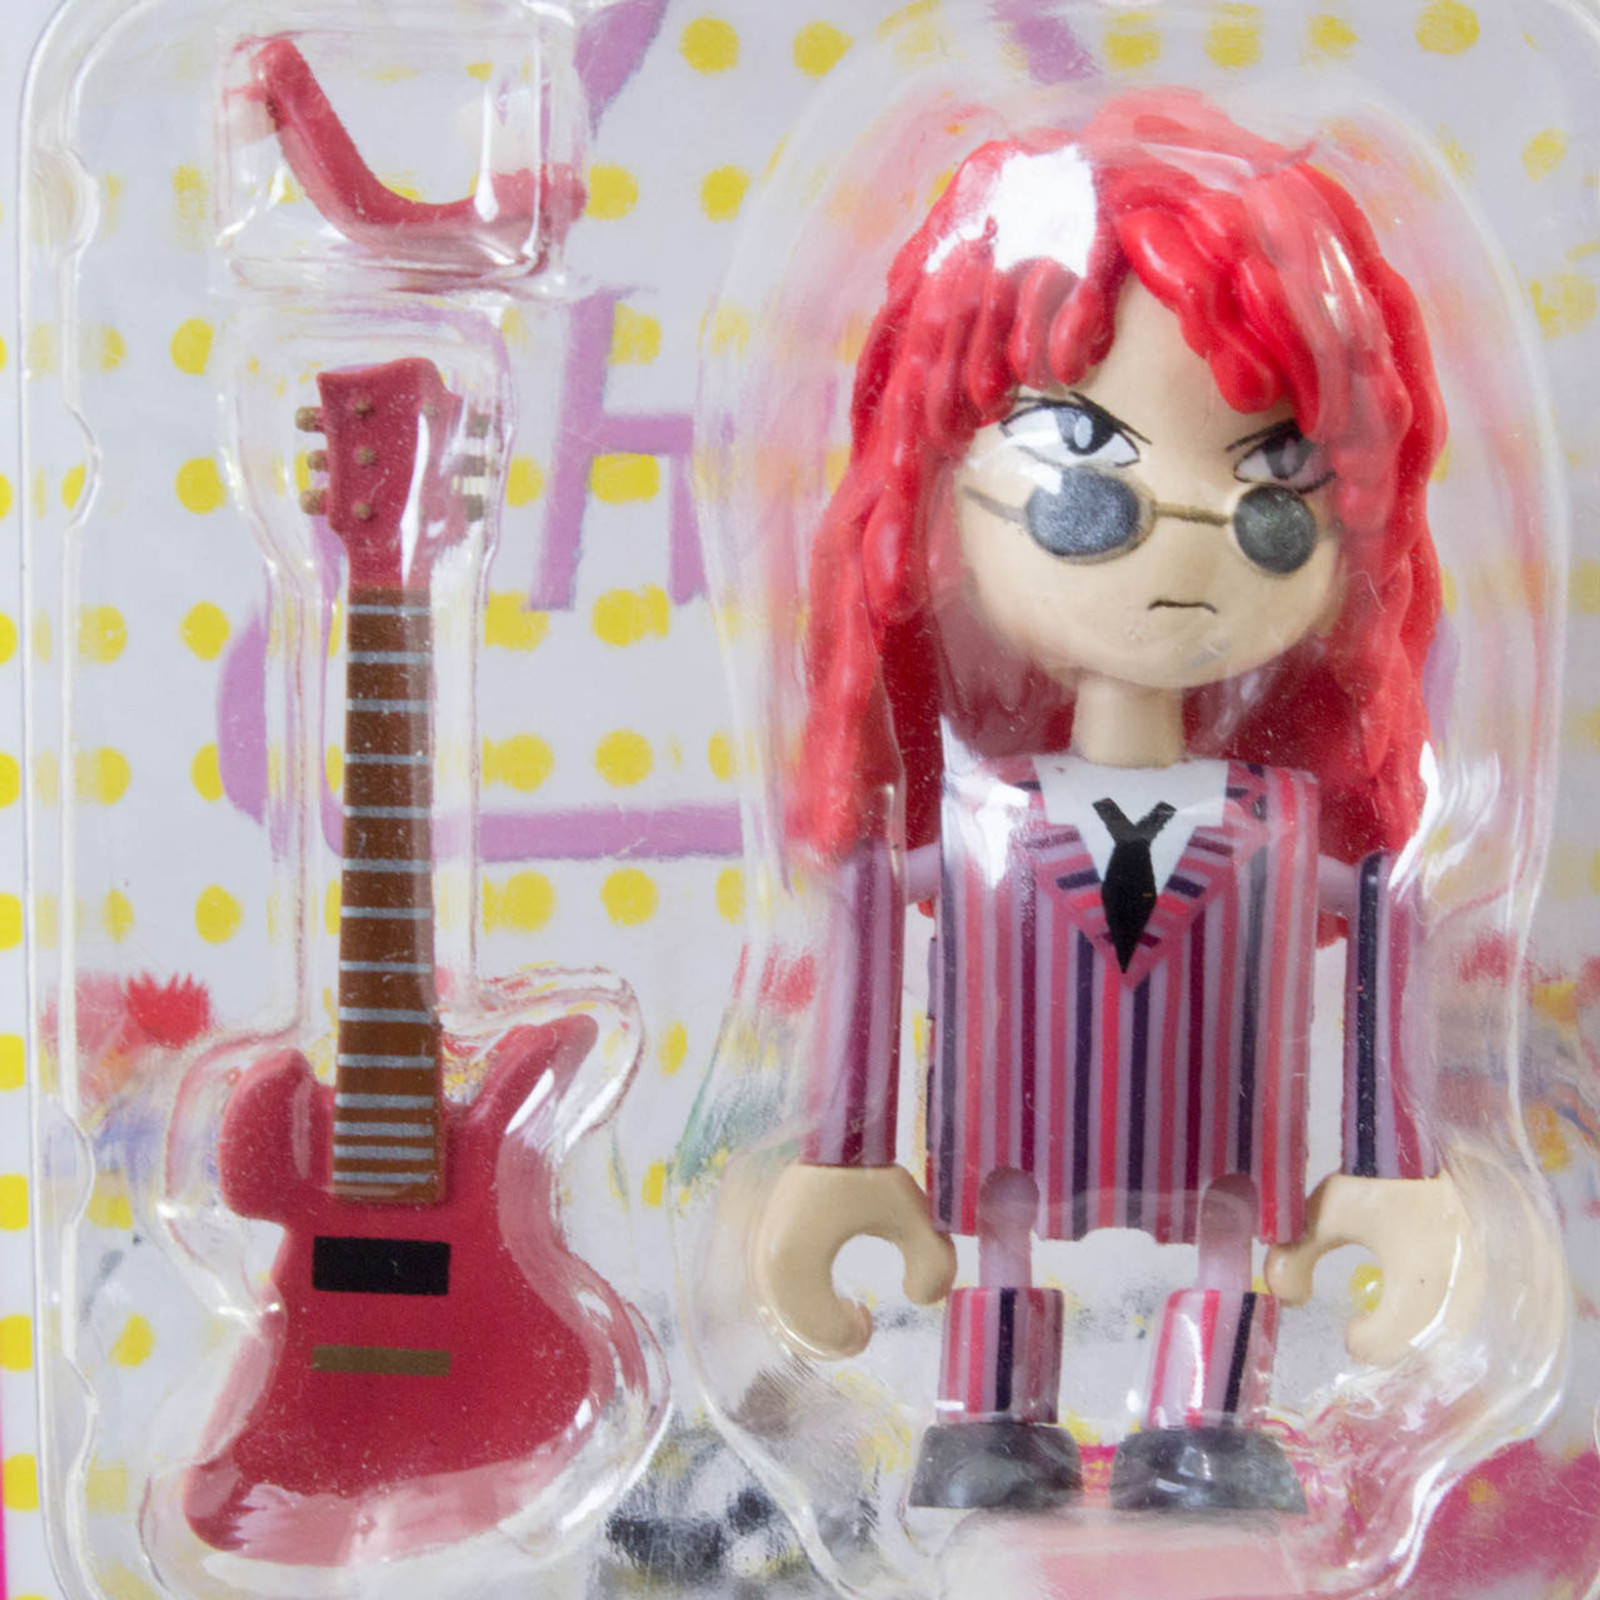 hide with Guitar X-Japan Play Doll Mini Figure Banpresto J-Rock Visual Kei